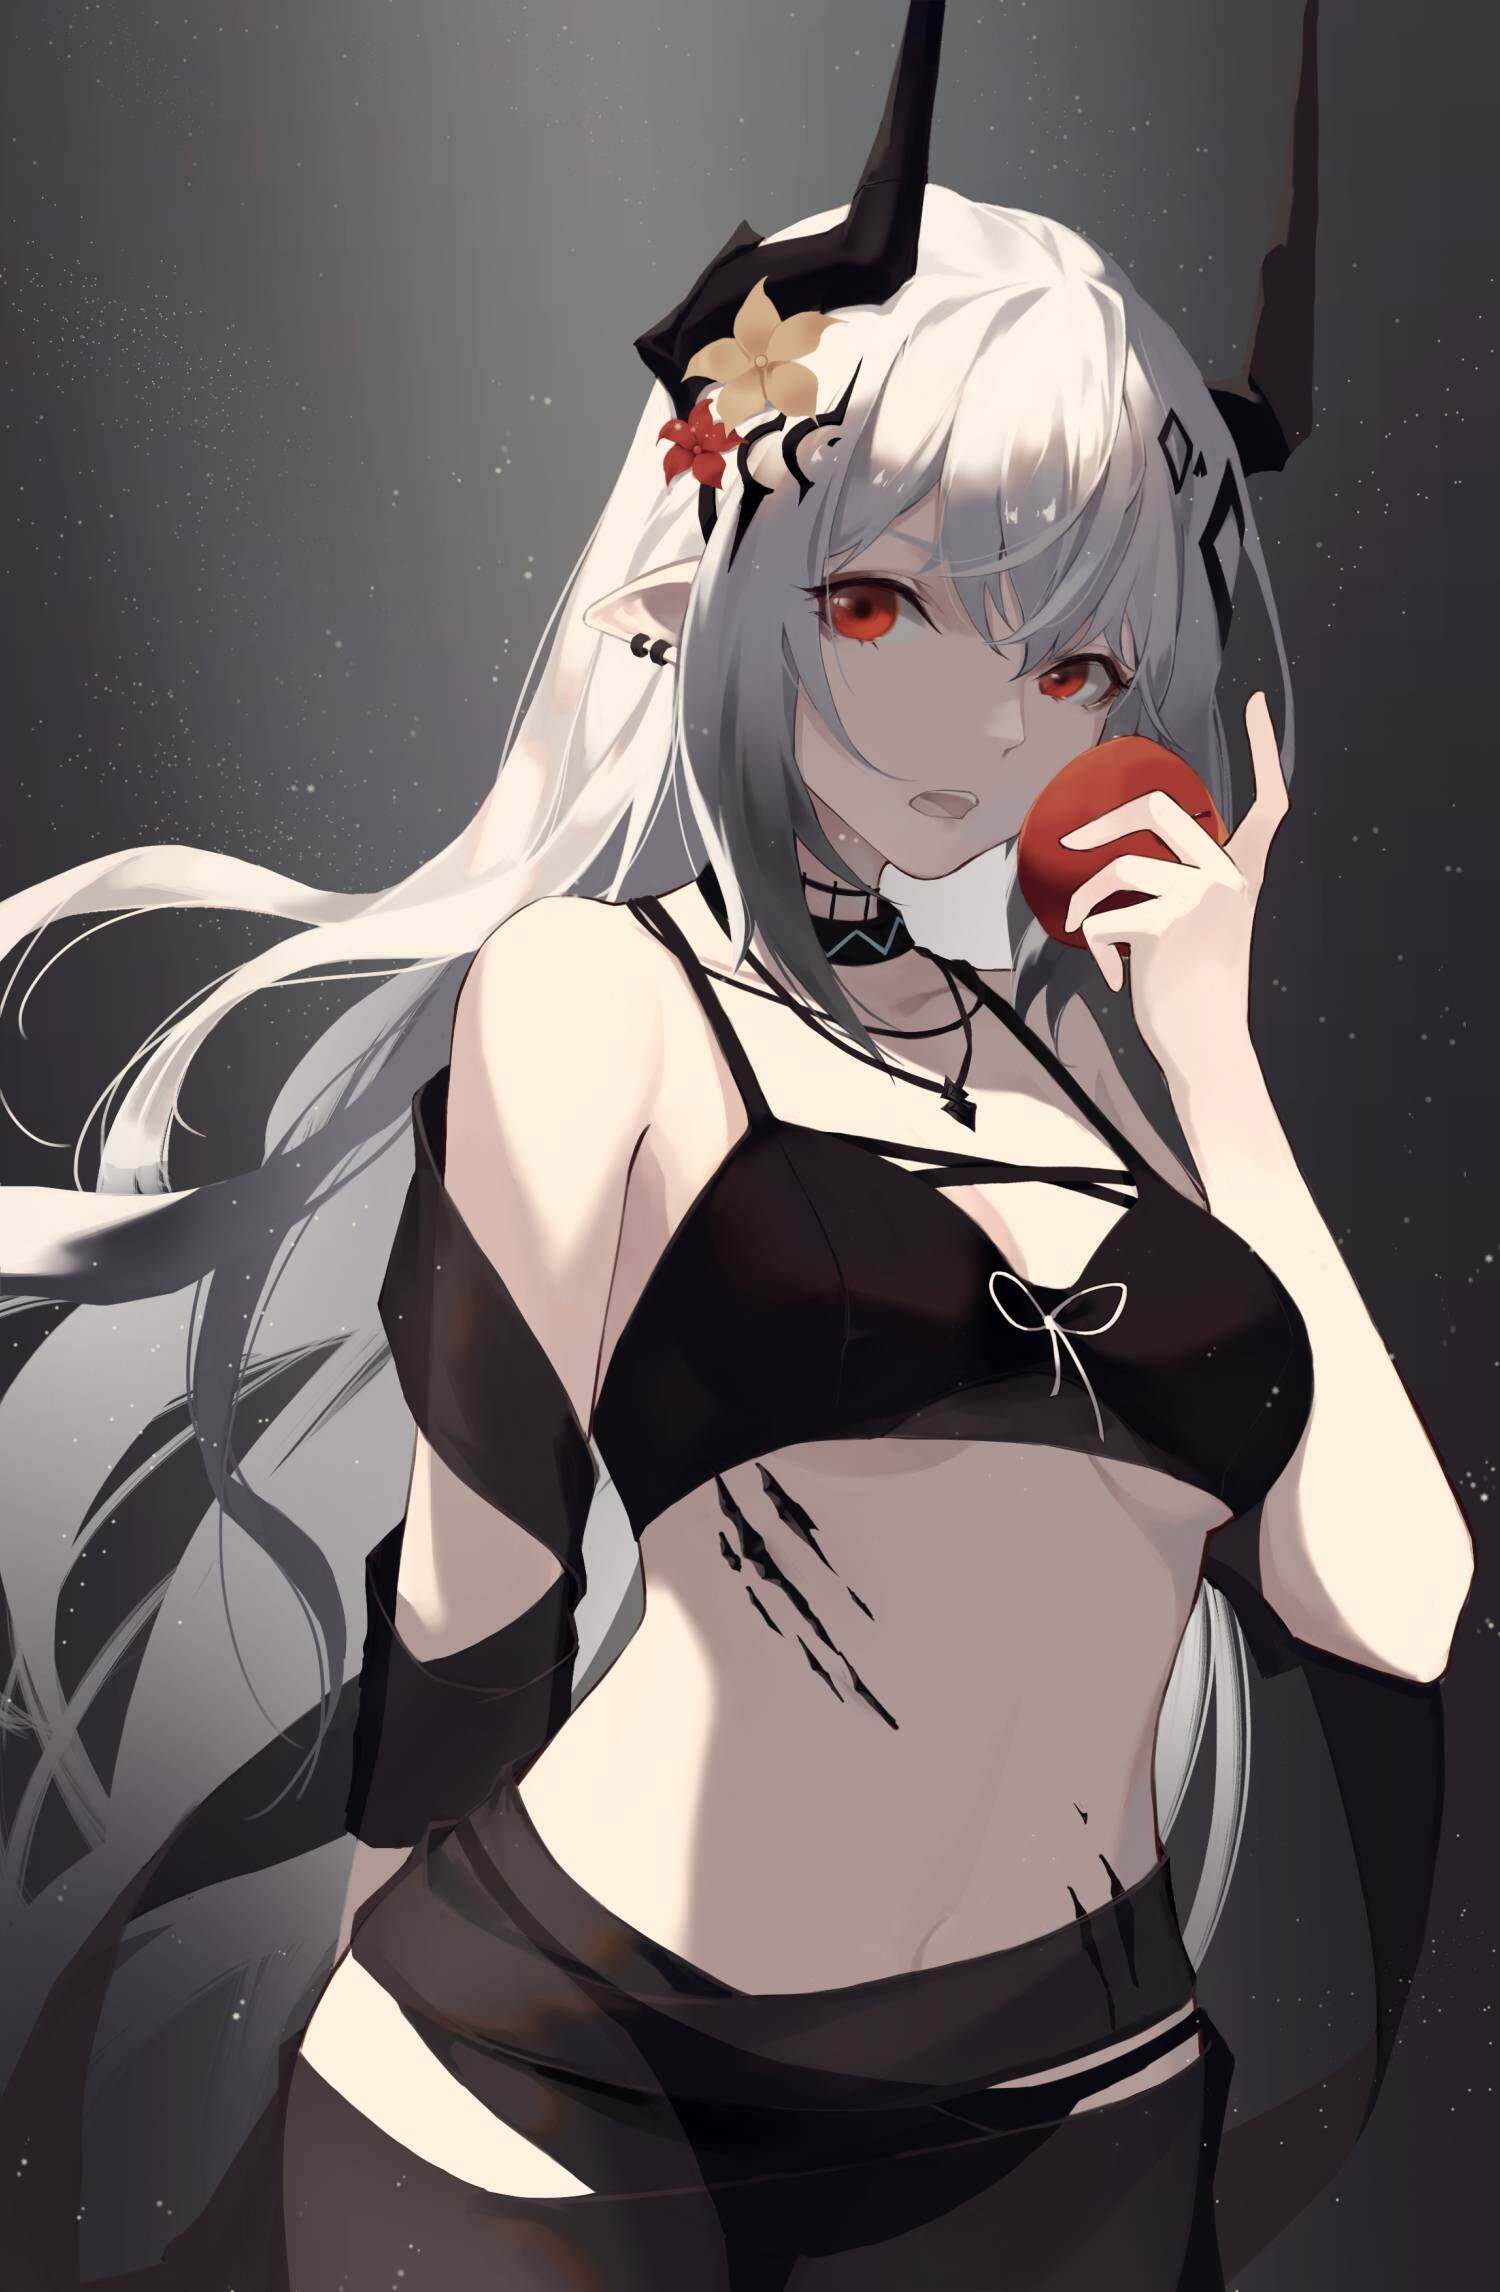 1girl arknights bangs bare_shoulders bikini black_bikini black_choker breasts choker flower food fruit grey_background hair_flower hair_ornament hand_up highres holding holding_food holding_fruit horns jewelry long_hair looking_at_viewer medium_breasts mudrock_(arknights) mudrock_(silent_night)_(arknights) necklace open_mouth oripathy_lesion_(arknights) pointy_ears qingjiujiu red_eyes silver_hair solo stomach swimsuit upper_body very_long_hair